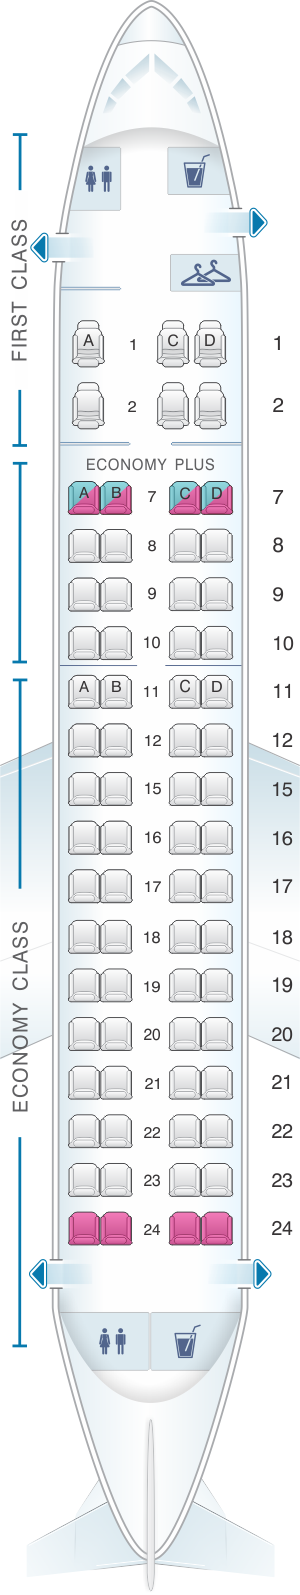 Plan De Cabine United Airlines Embraer Emb 170 E70